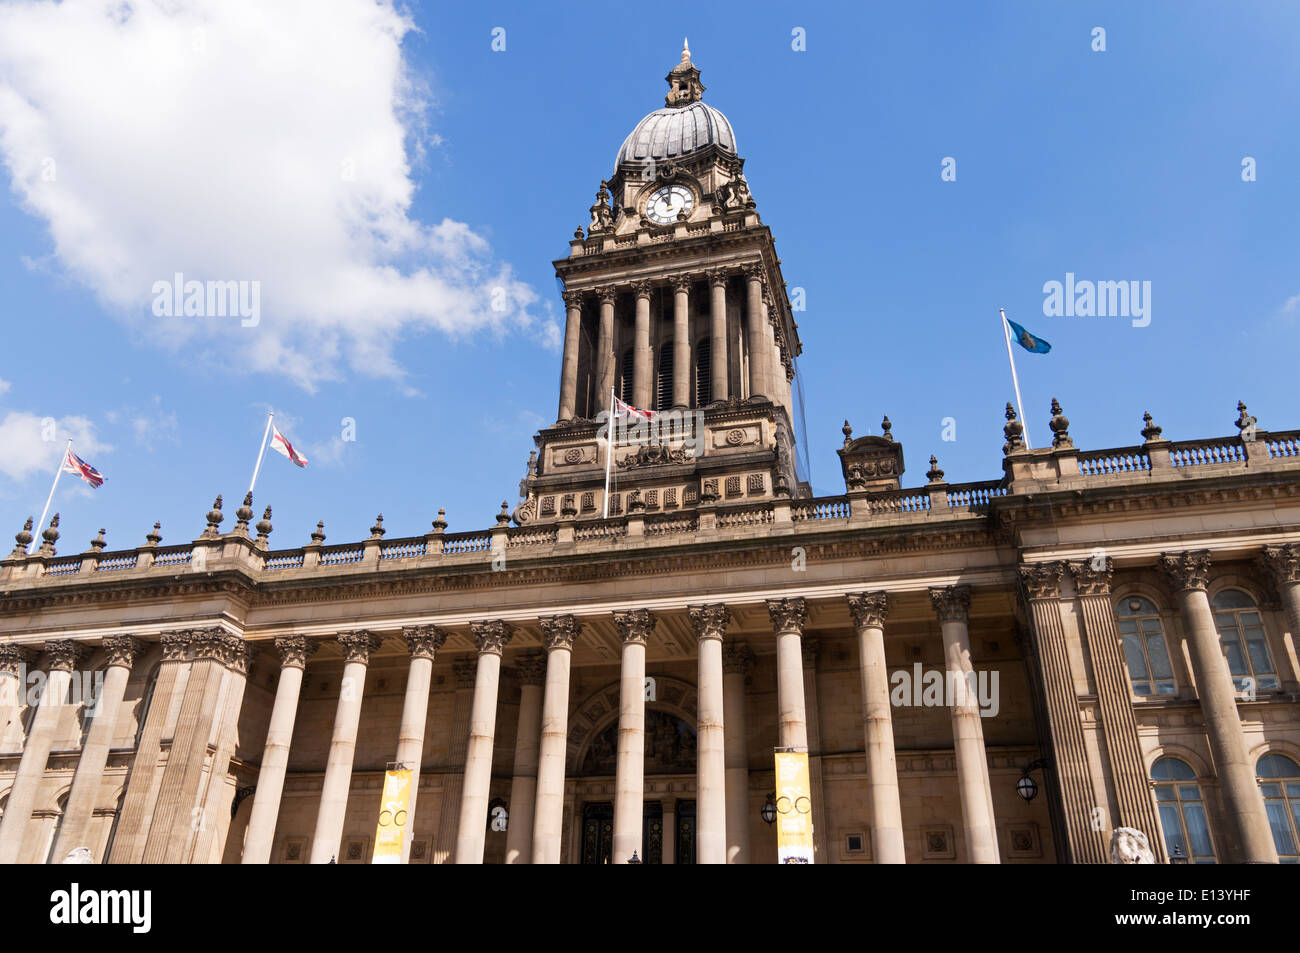 Leeds Town Hall, Yorkshire, England, UK - Stock Image